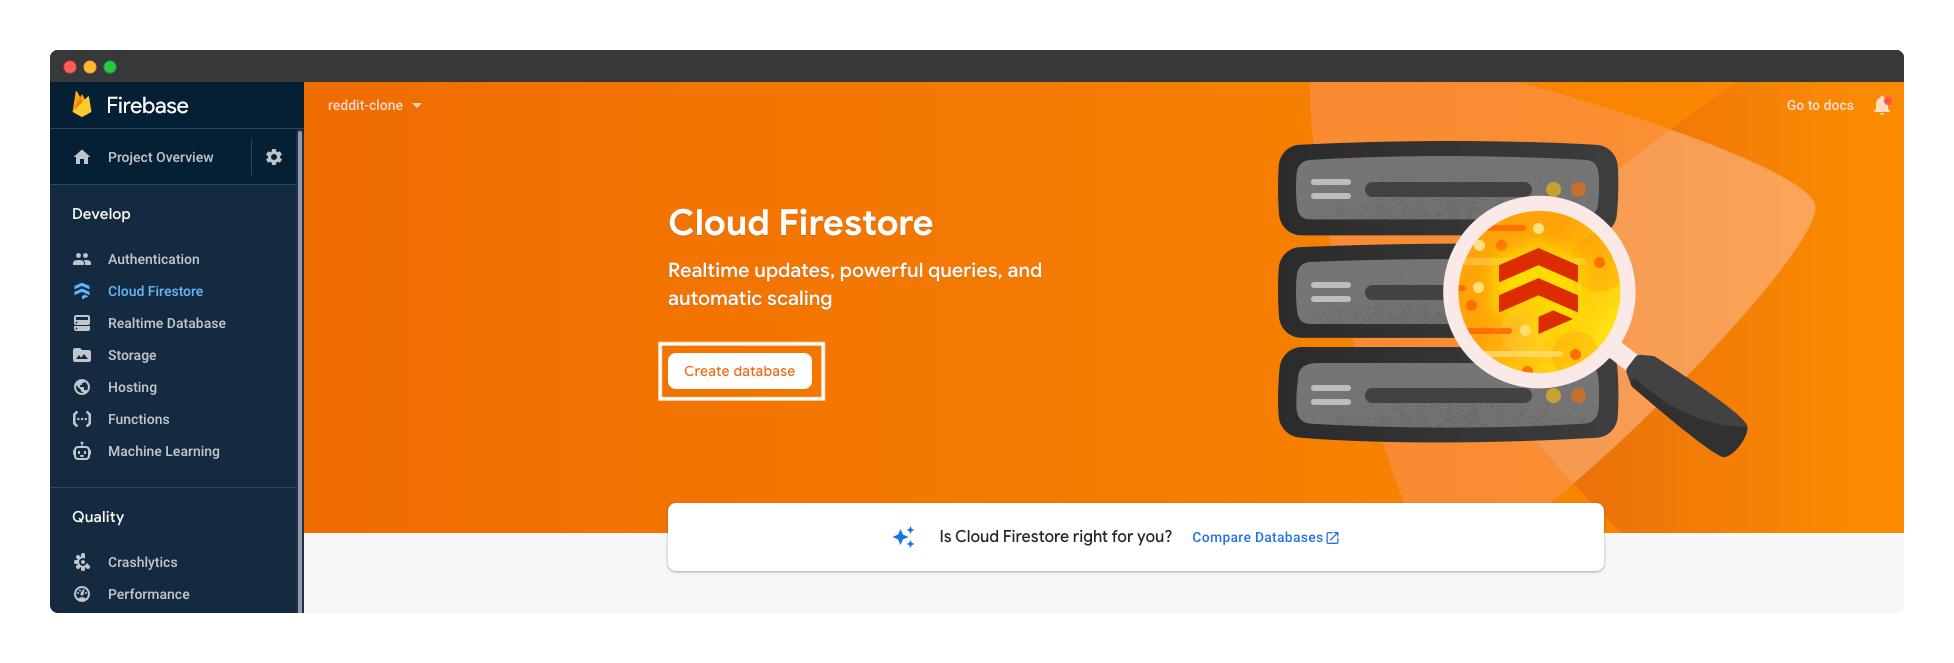 Creating a new Firebase Cloud Firestore